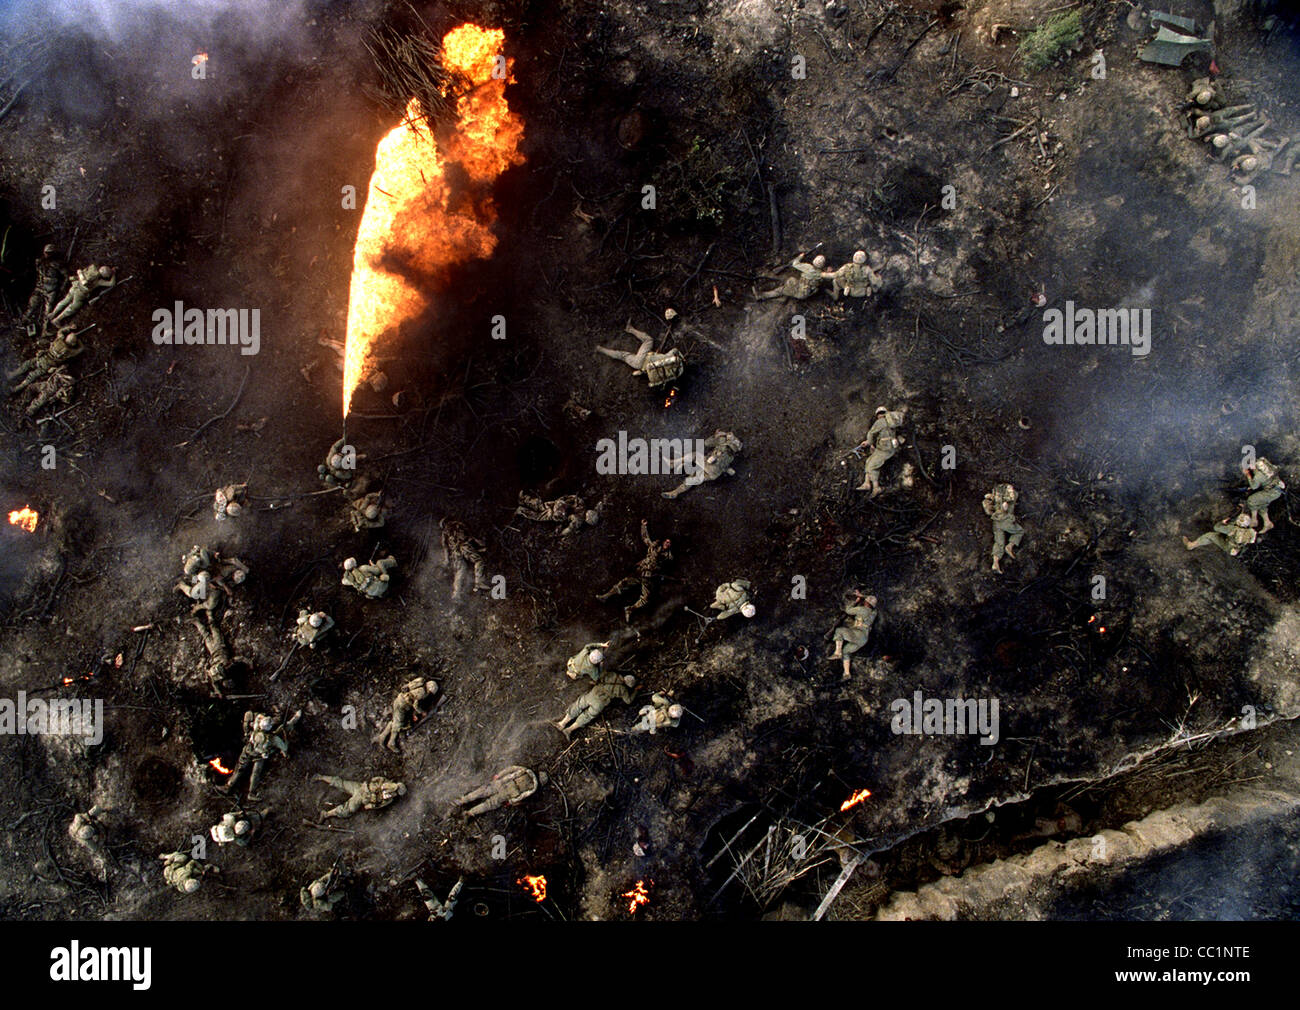 FLAME THROWER & WAR DEAD THE PACIFIC (2010) - Stock Image